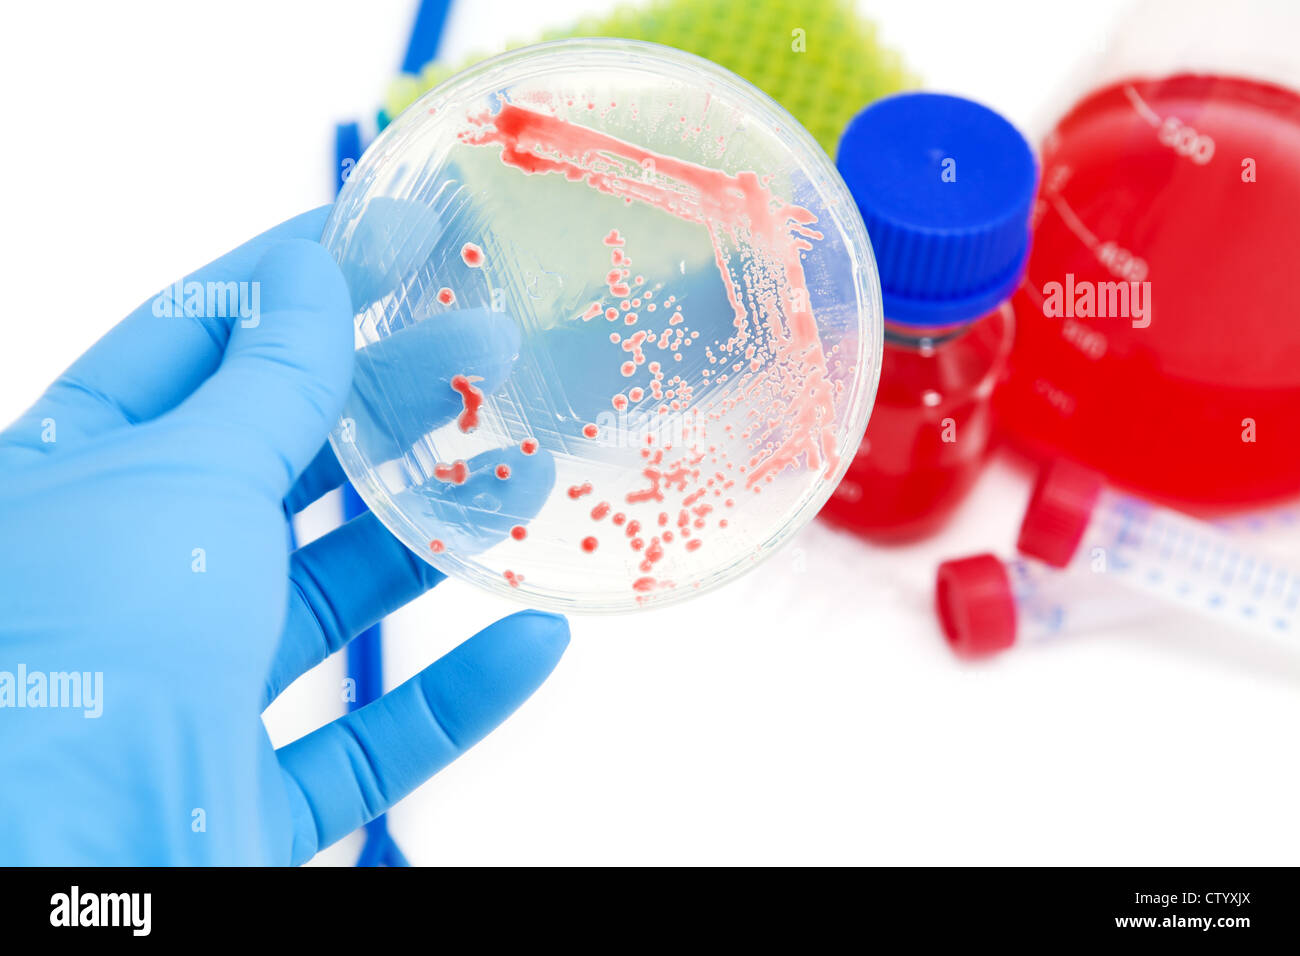 microorganisms mutants on agar plate in laboratory - Stock Image